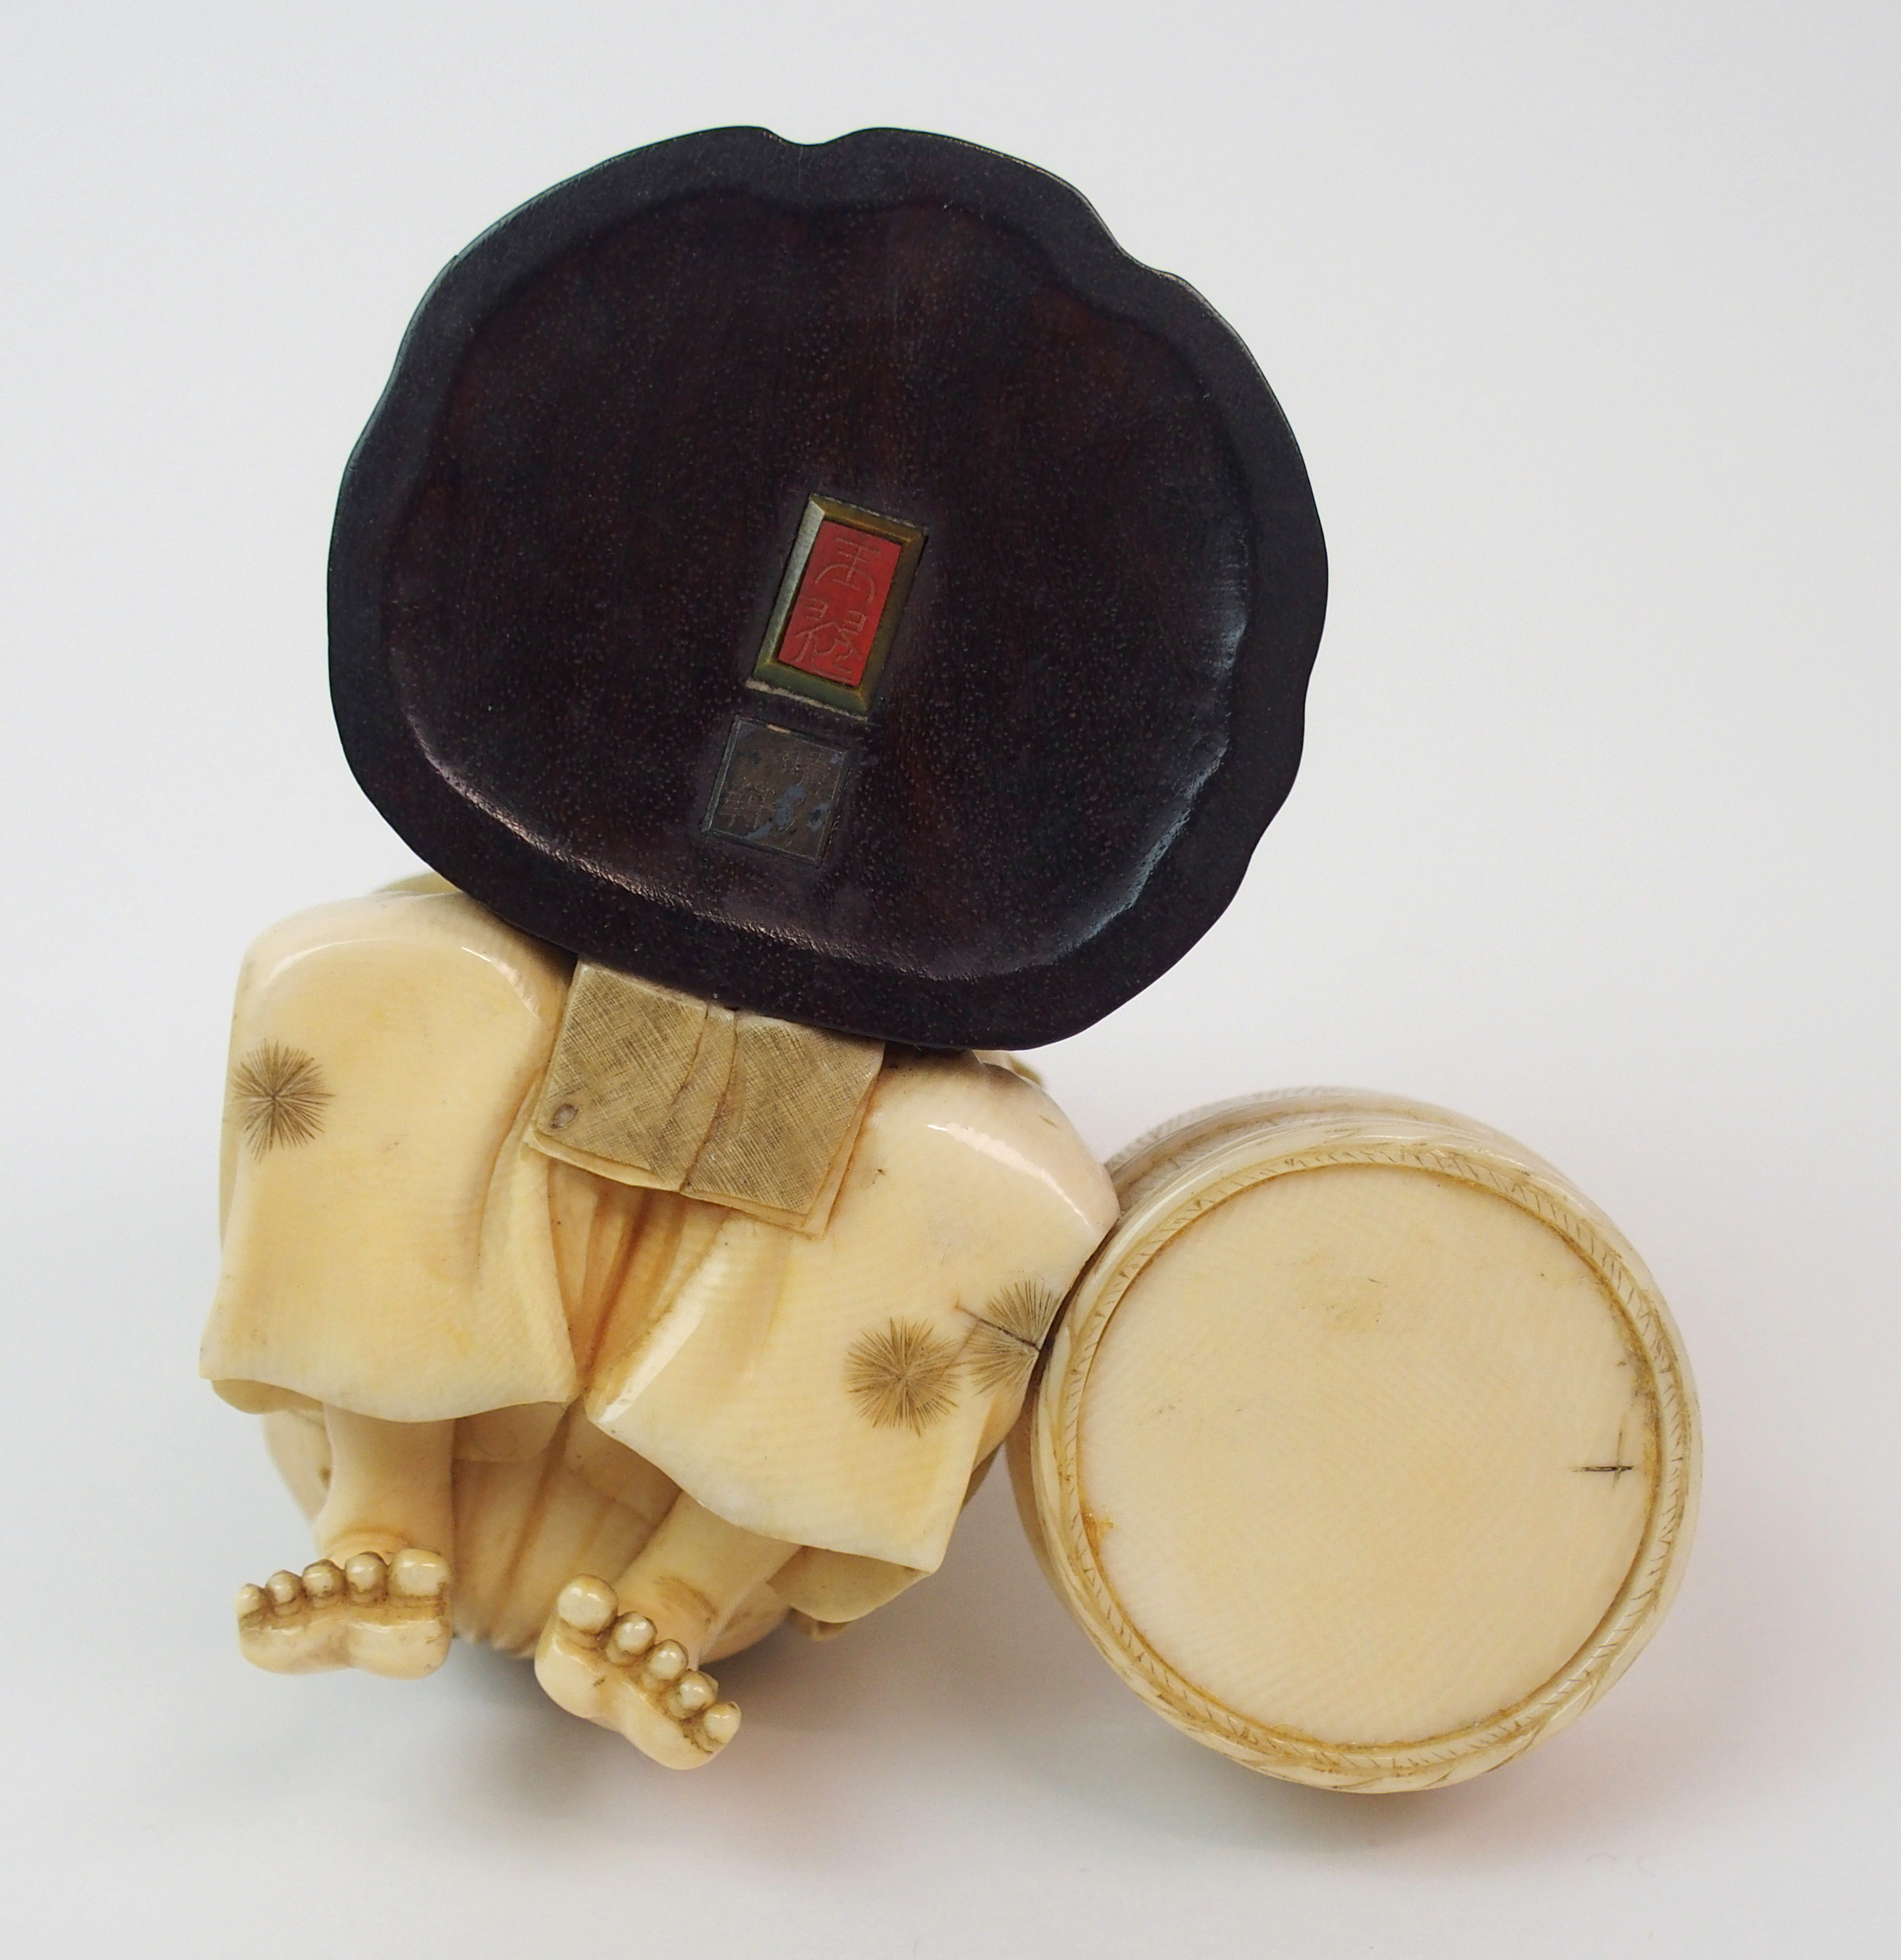 Lot 24 - AN IVORY, WOOD AND METAL OKIMONO OF A MIRROR MAKER kneeling and polishing a mirror on a tree